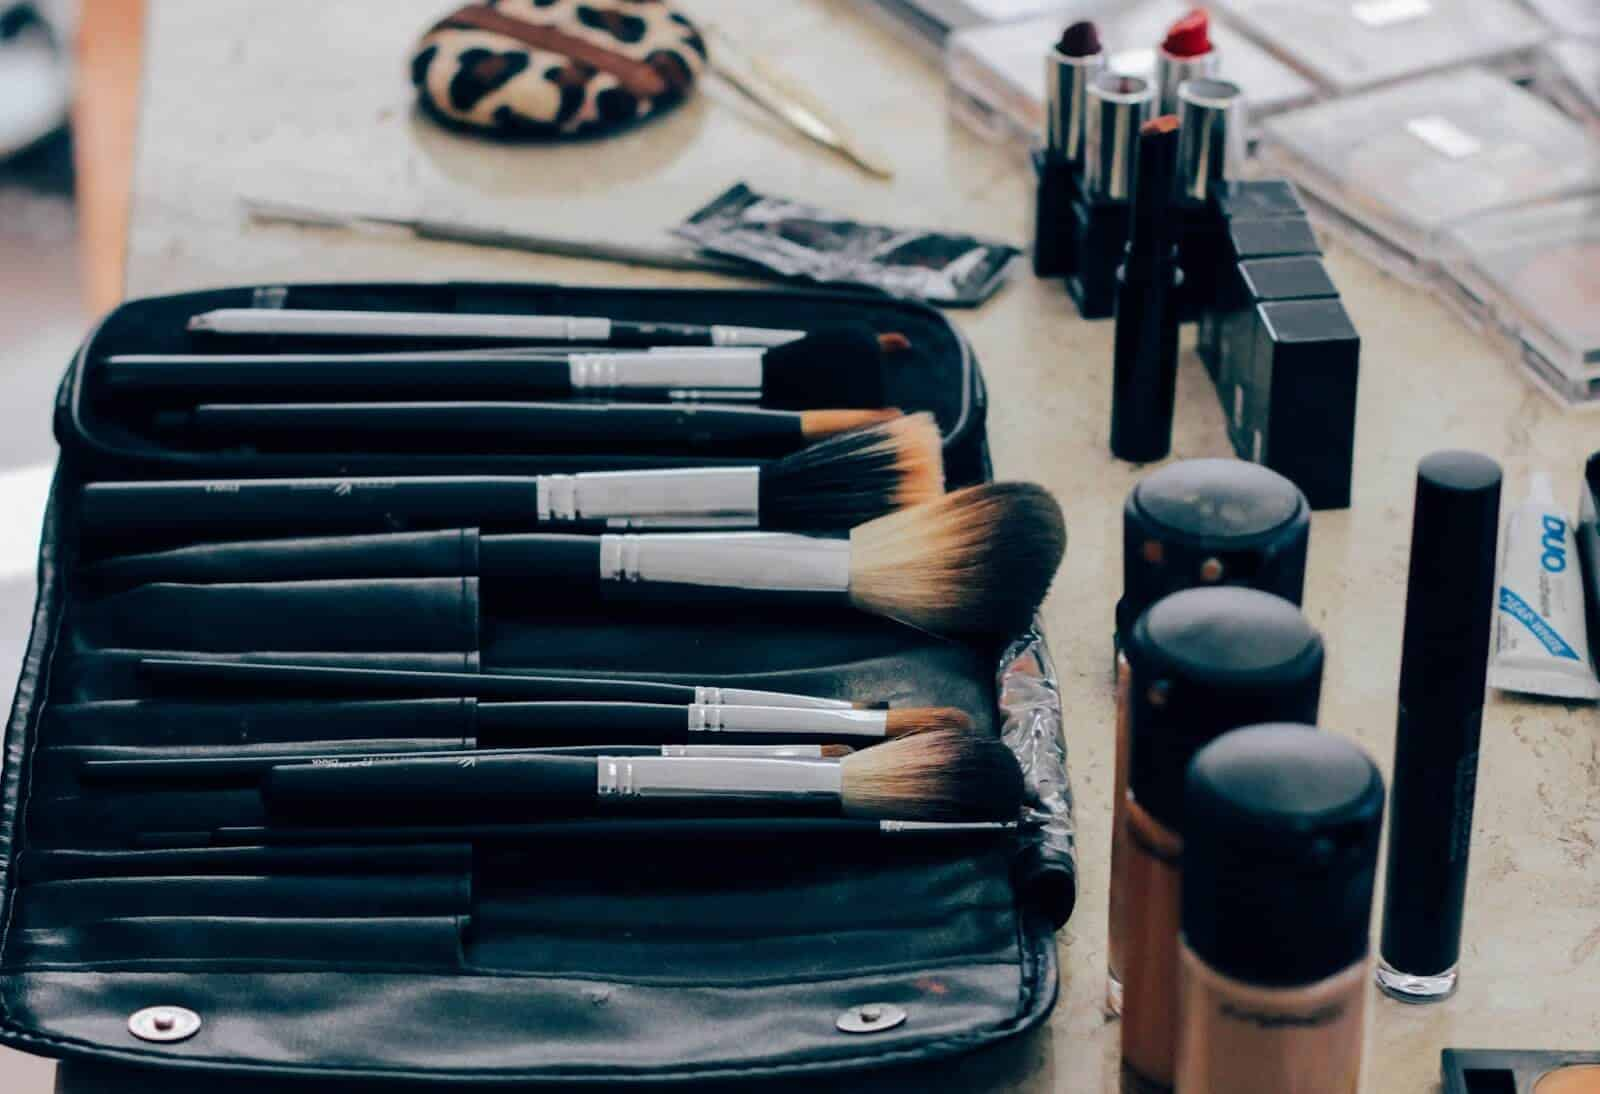 Bag of make up, express yourself, be creative